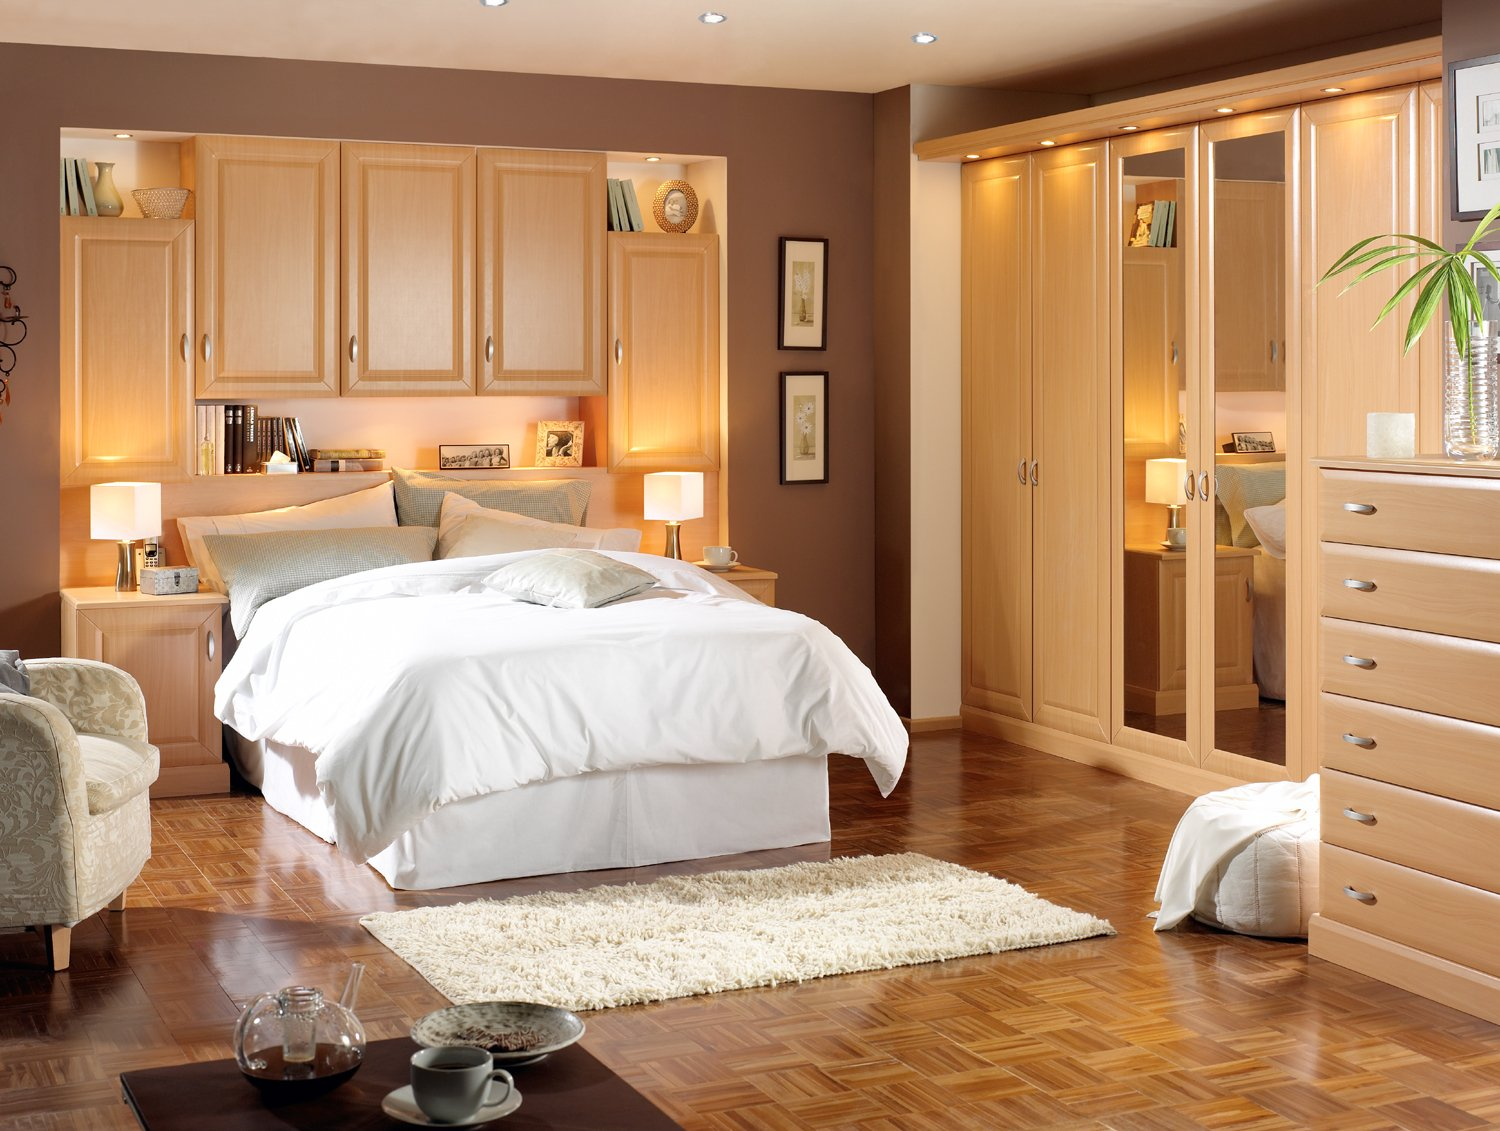 Bedrooms cupboard designs pictures an interior design for Nice bed designs